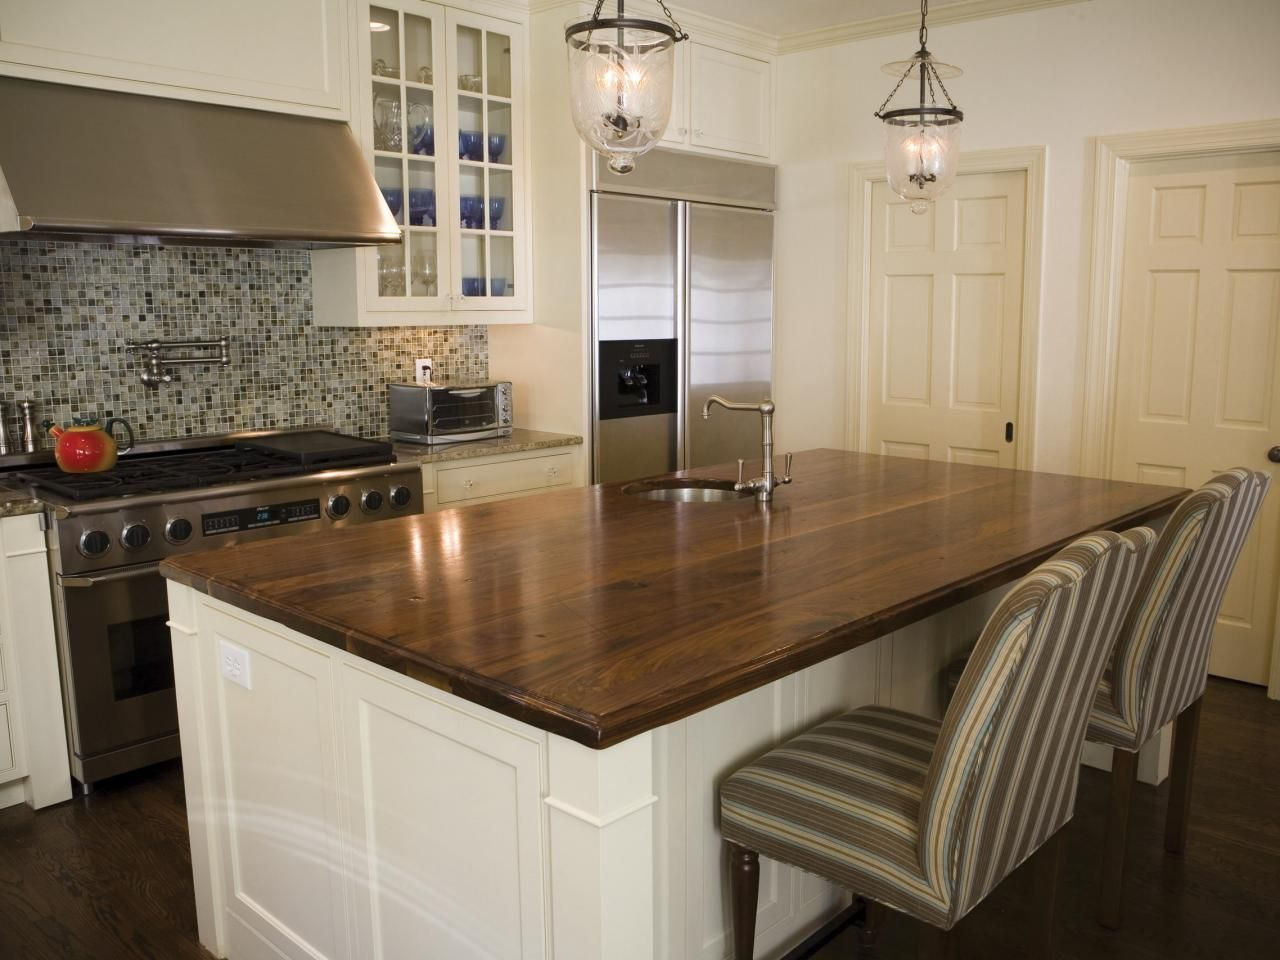 Diy Network Talks About Price Range And The Pros Cons Of Diffe Types Countertopscountertop Materialswood